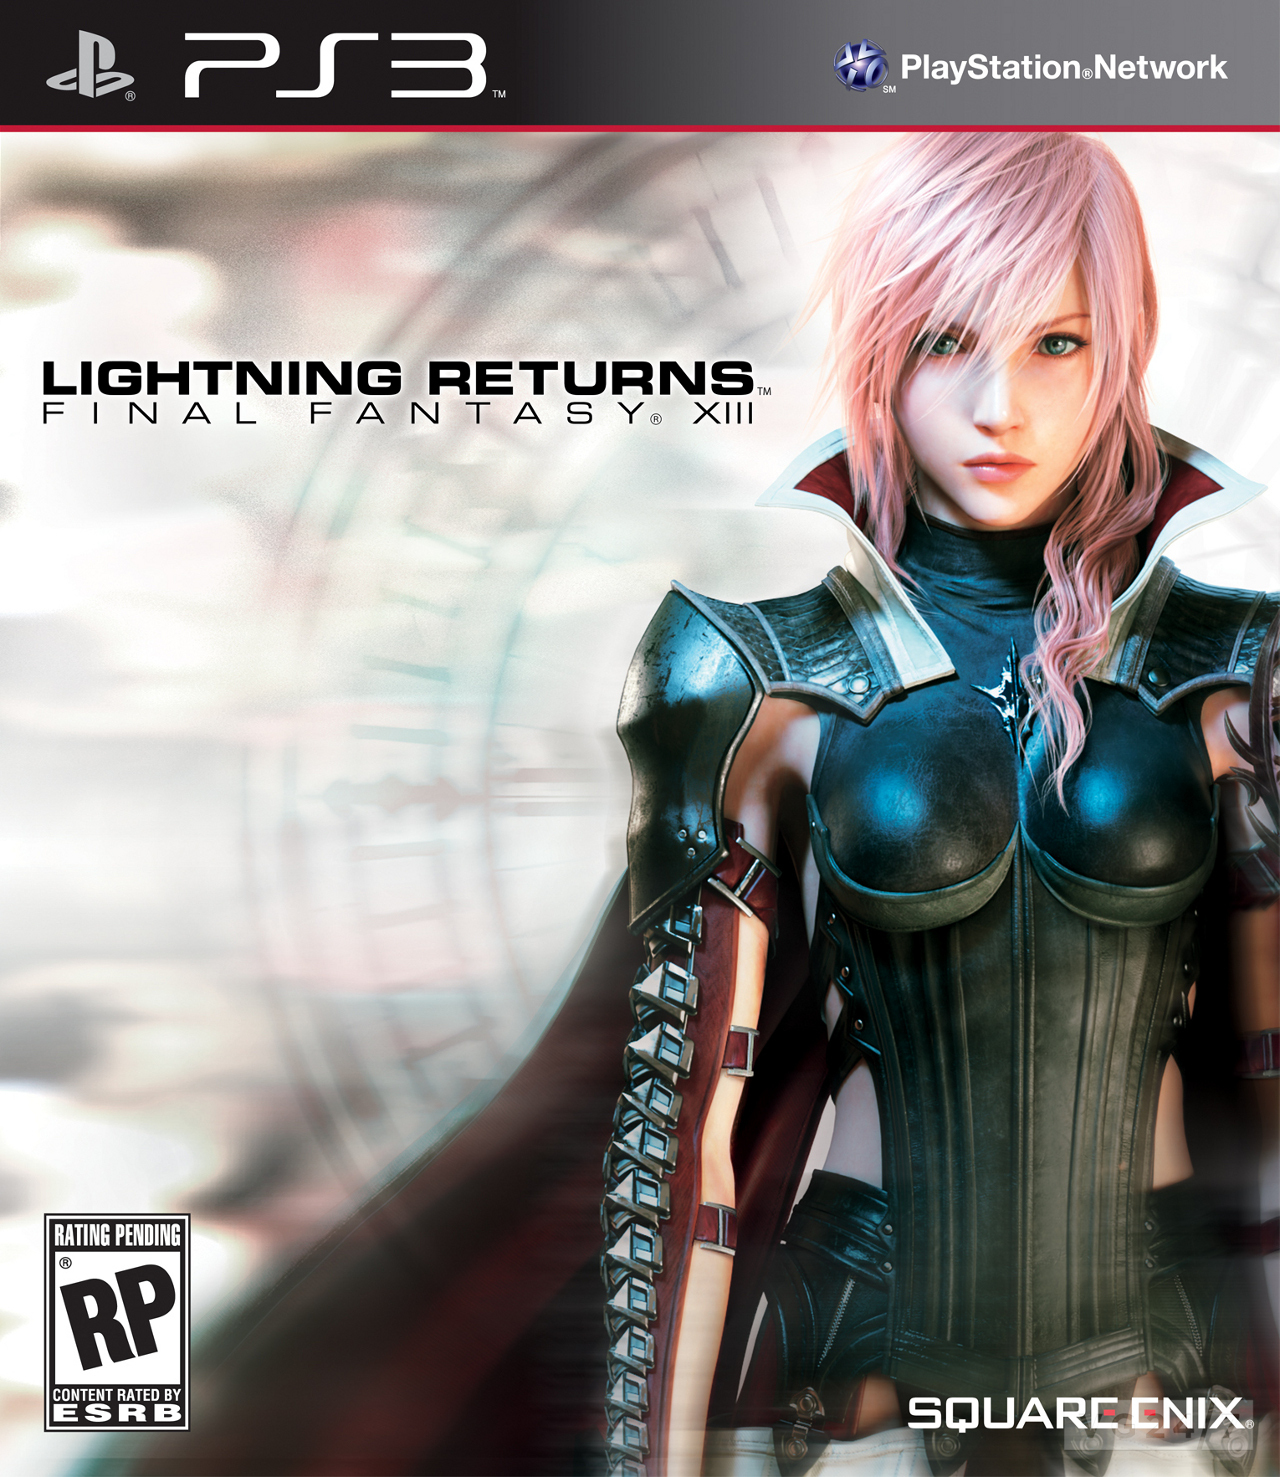 Final Fantasy XIII Trilogy ? Jaquette-lightning-returns-final-fantasy-xiii-playstation-3-ps3-cover-avant-g-1370527002